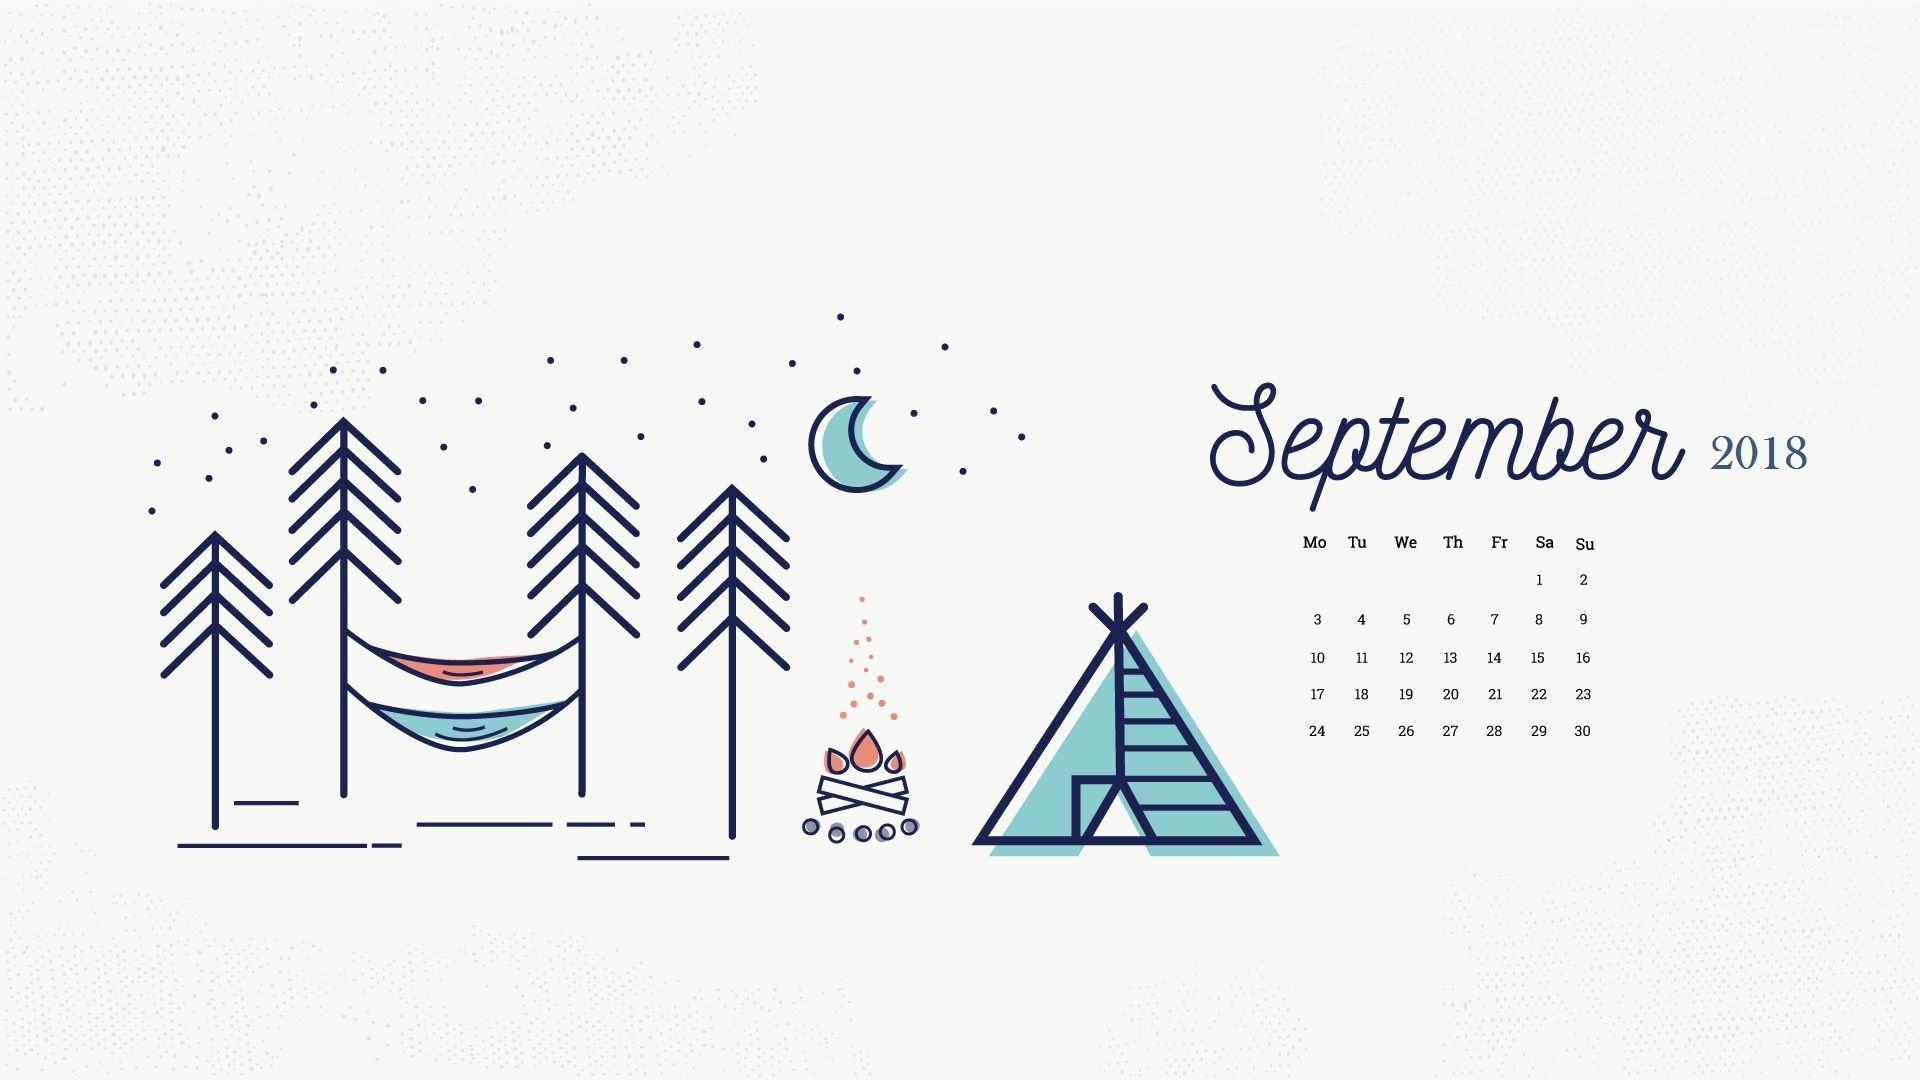 September 2018 Desktop Calendar Wallpapers